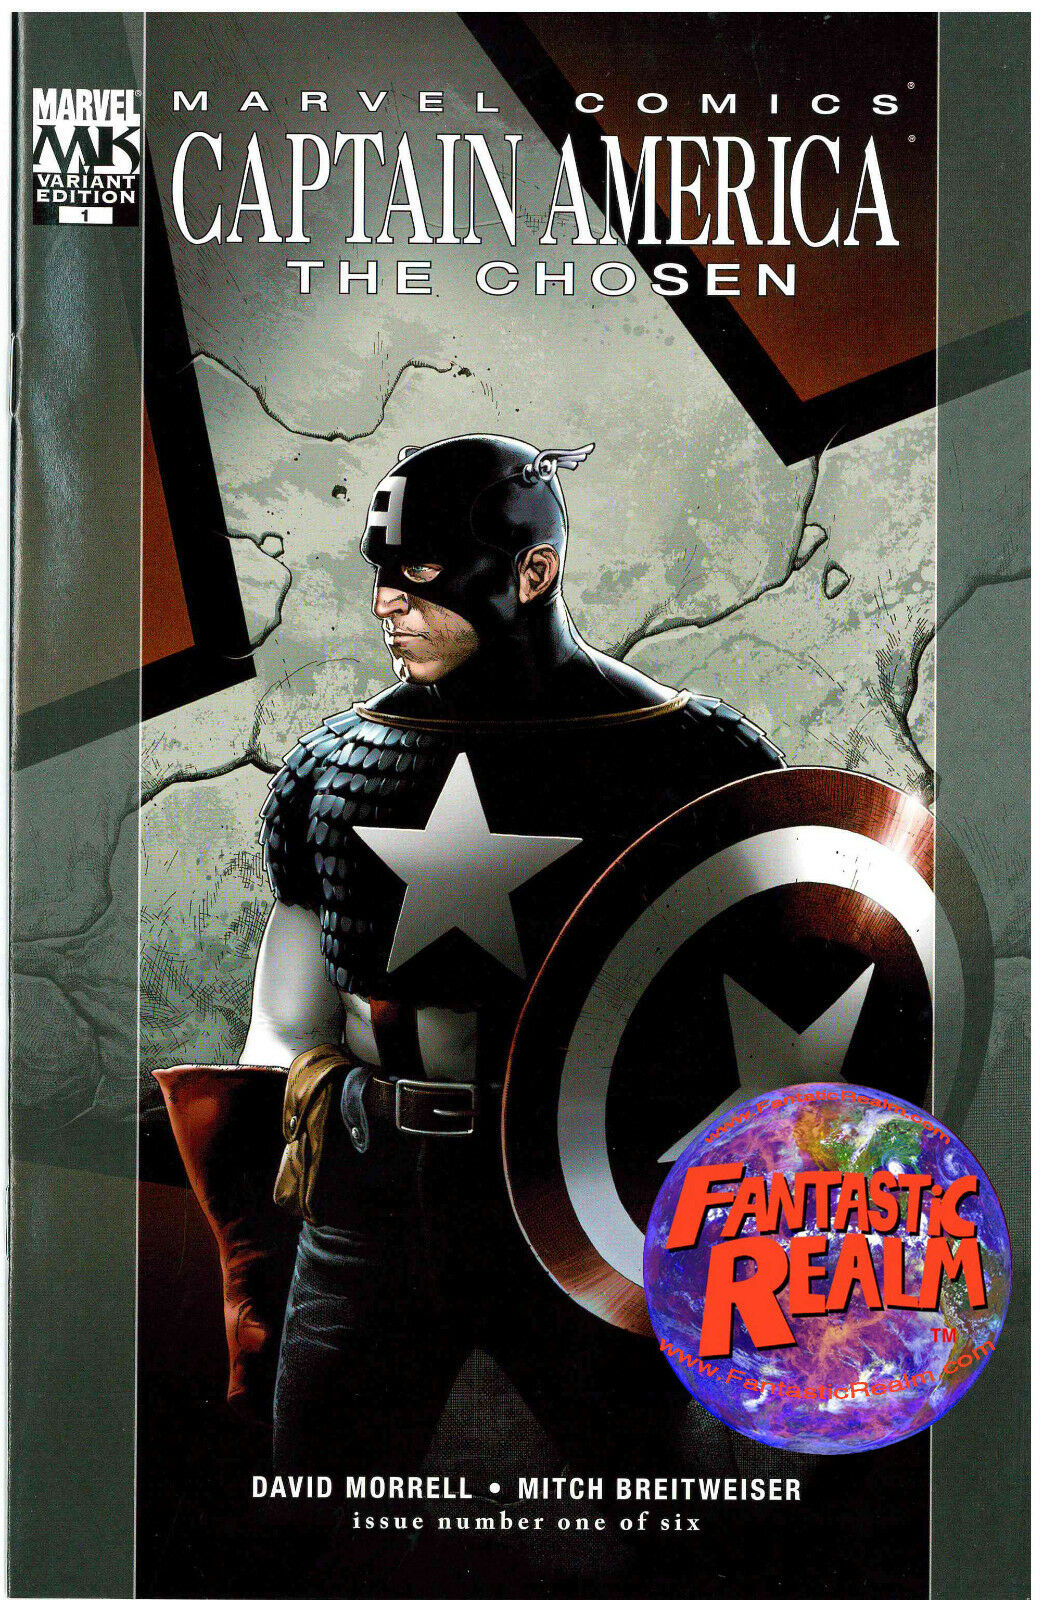 CAPTAIN AMERICA: THE CHOSEN #1 VARIANT EDITION (2007) MARVEL COMICS